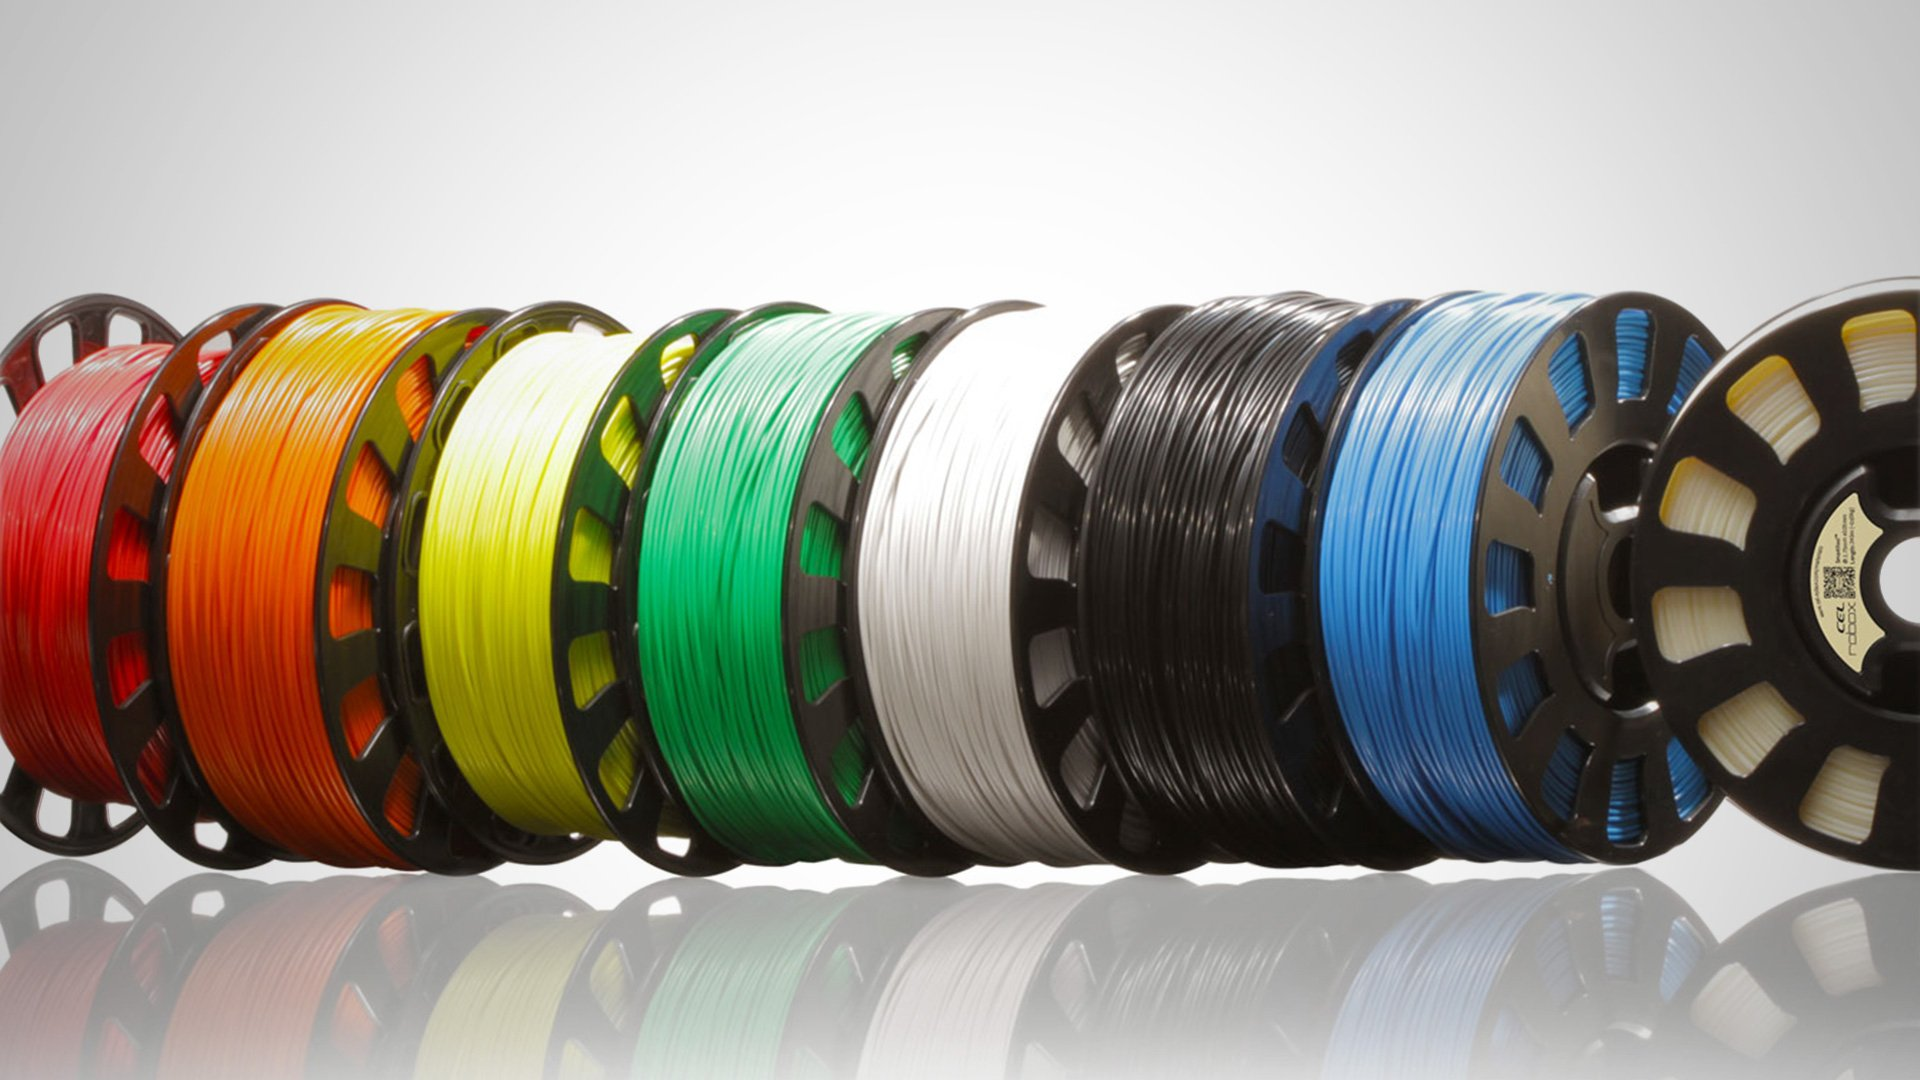 2020 3D Printer Filament Buyer's Guide | All3DP